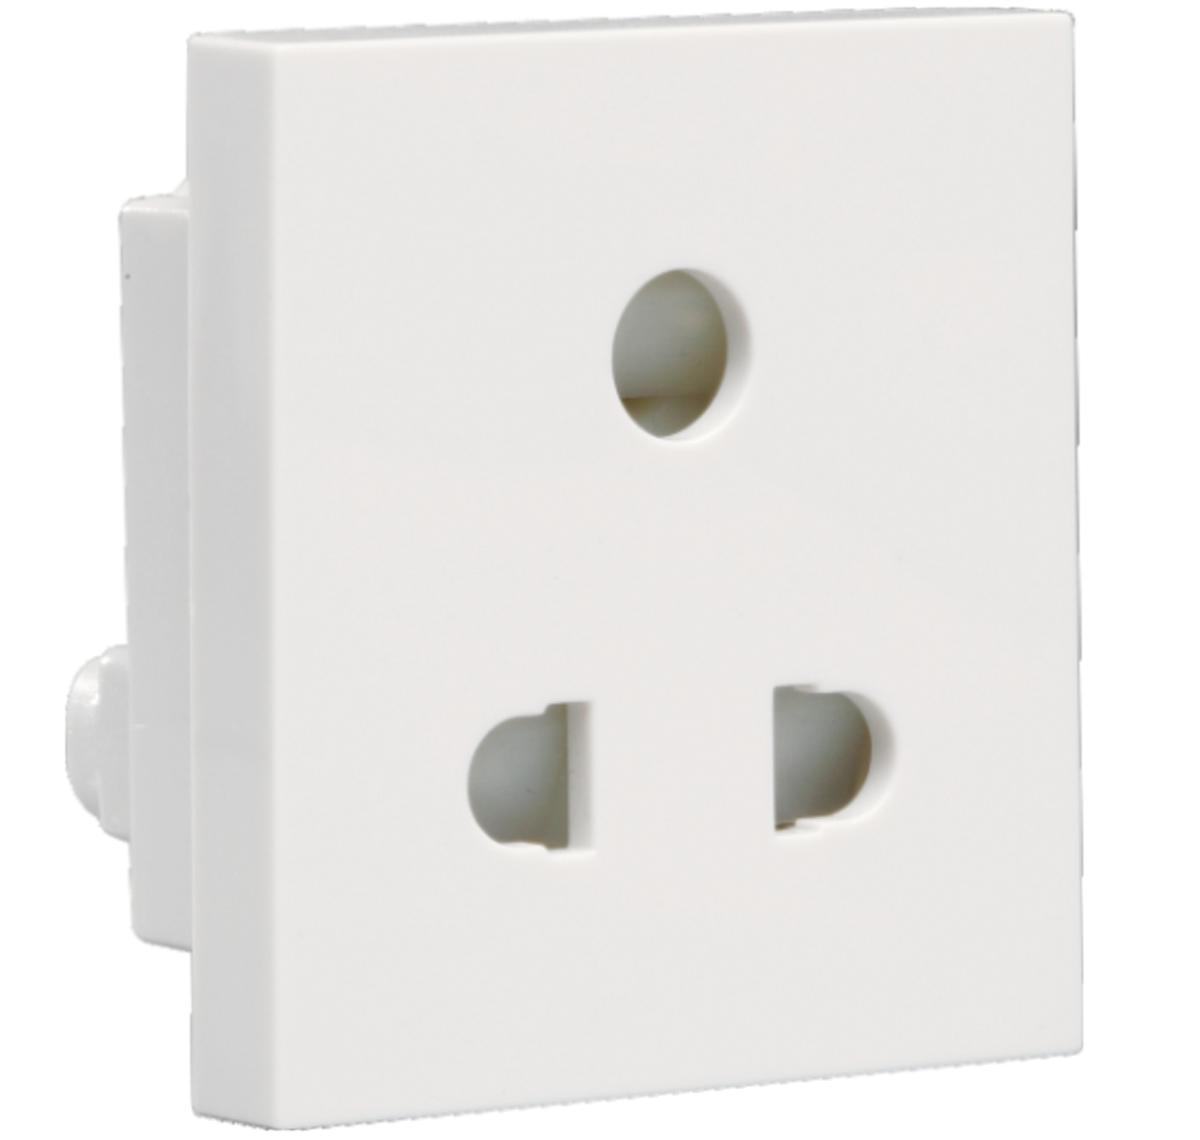 Crabtree - 6 A 3 pin shuttered socket